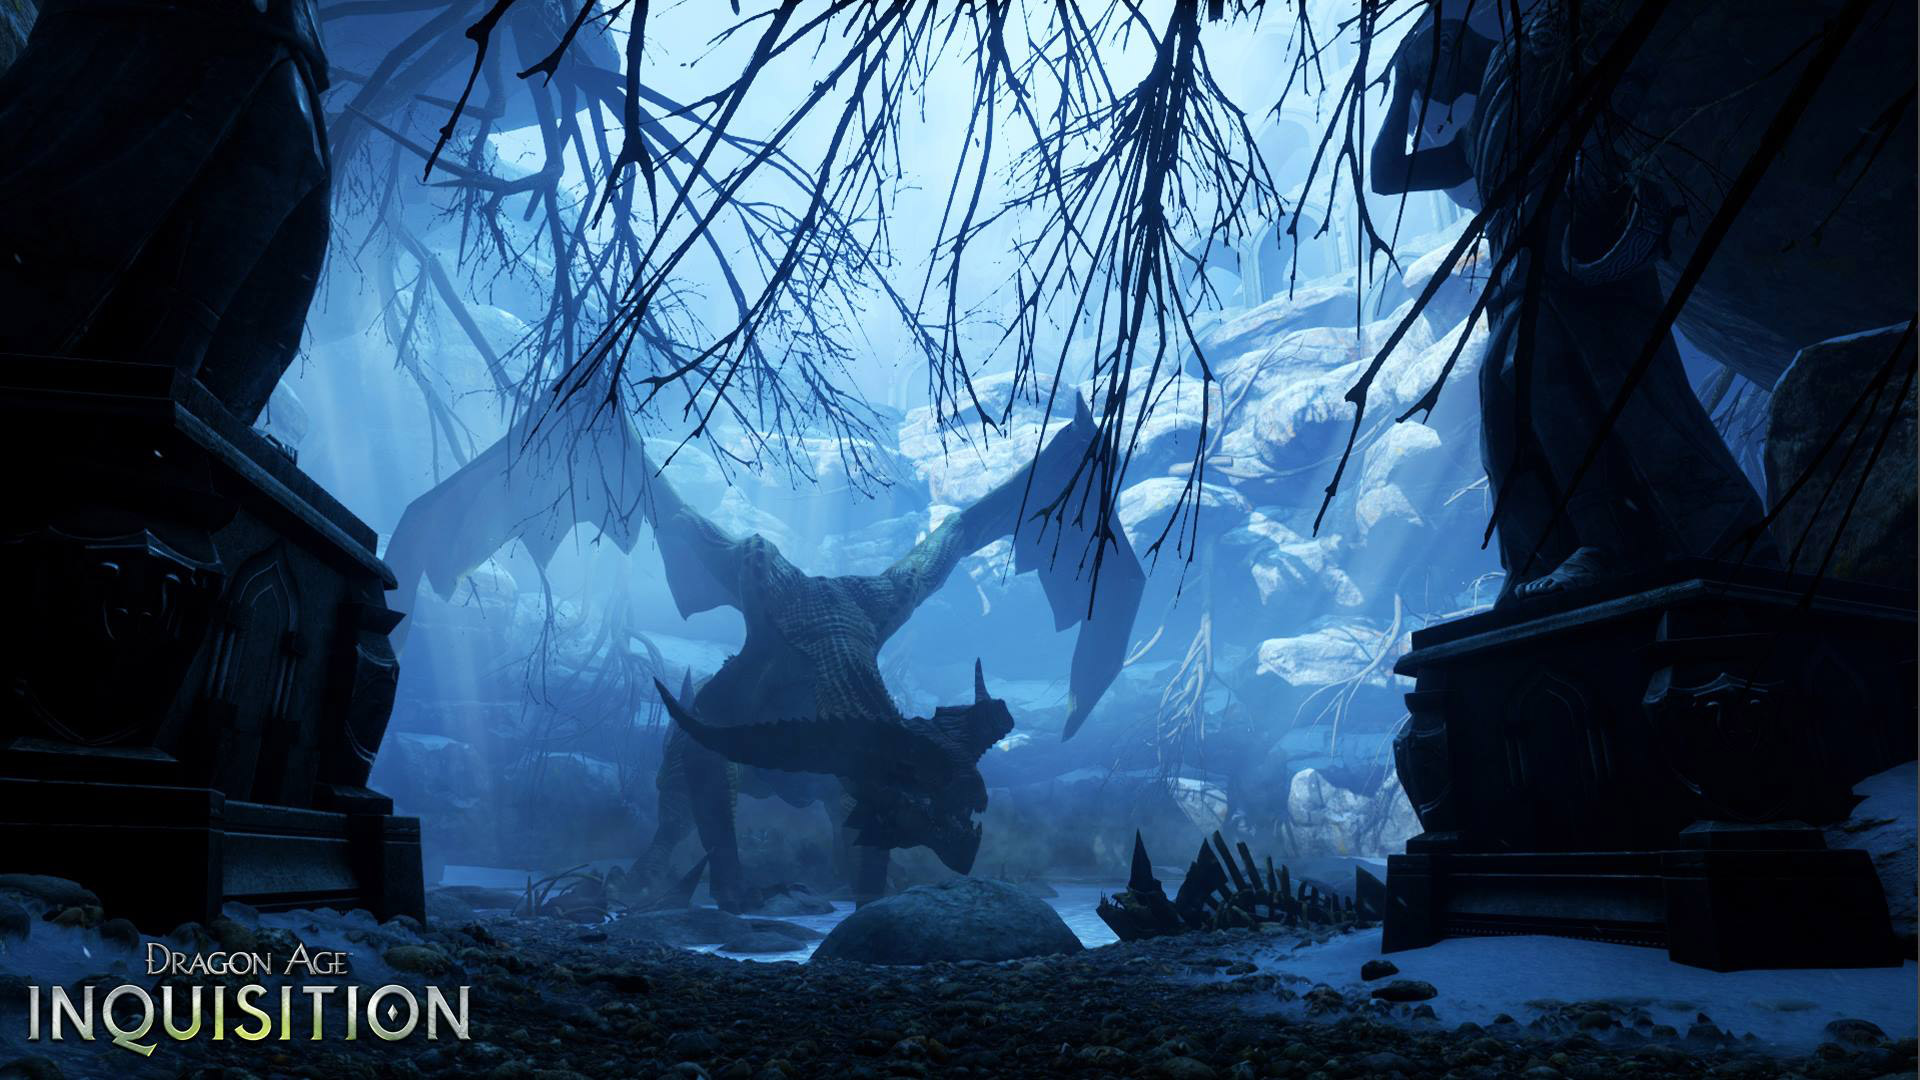 Inquisition Wallpaper Posted By Samantha Cunningham